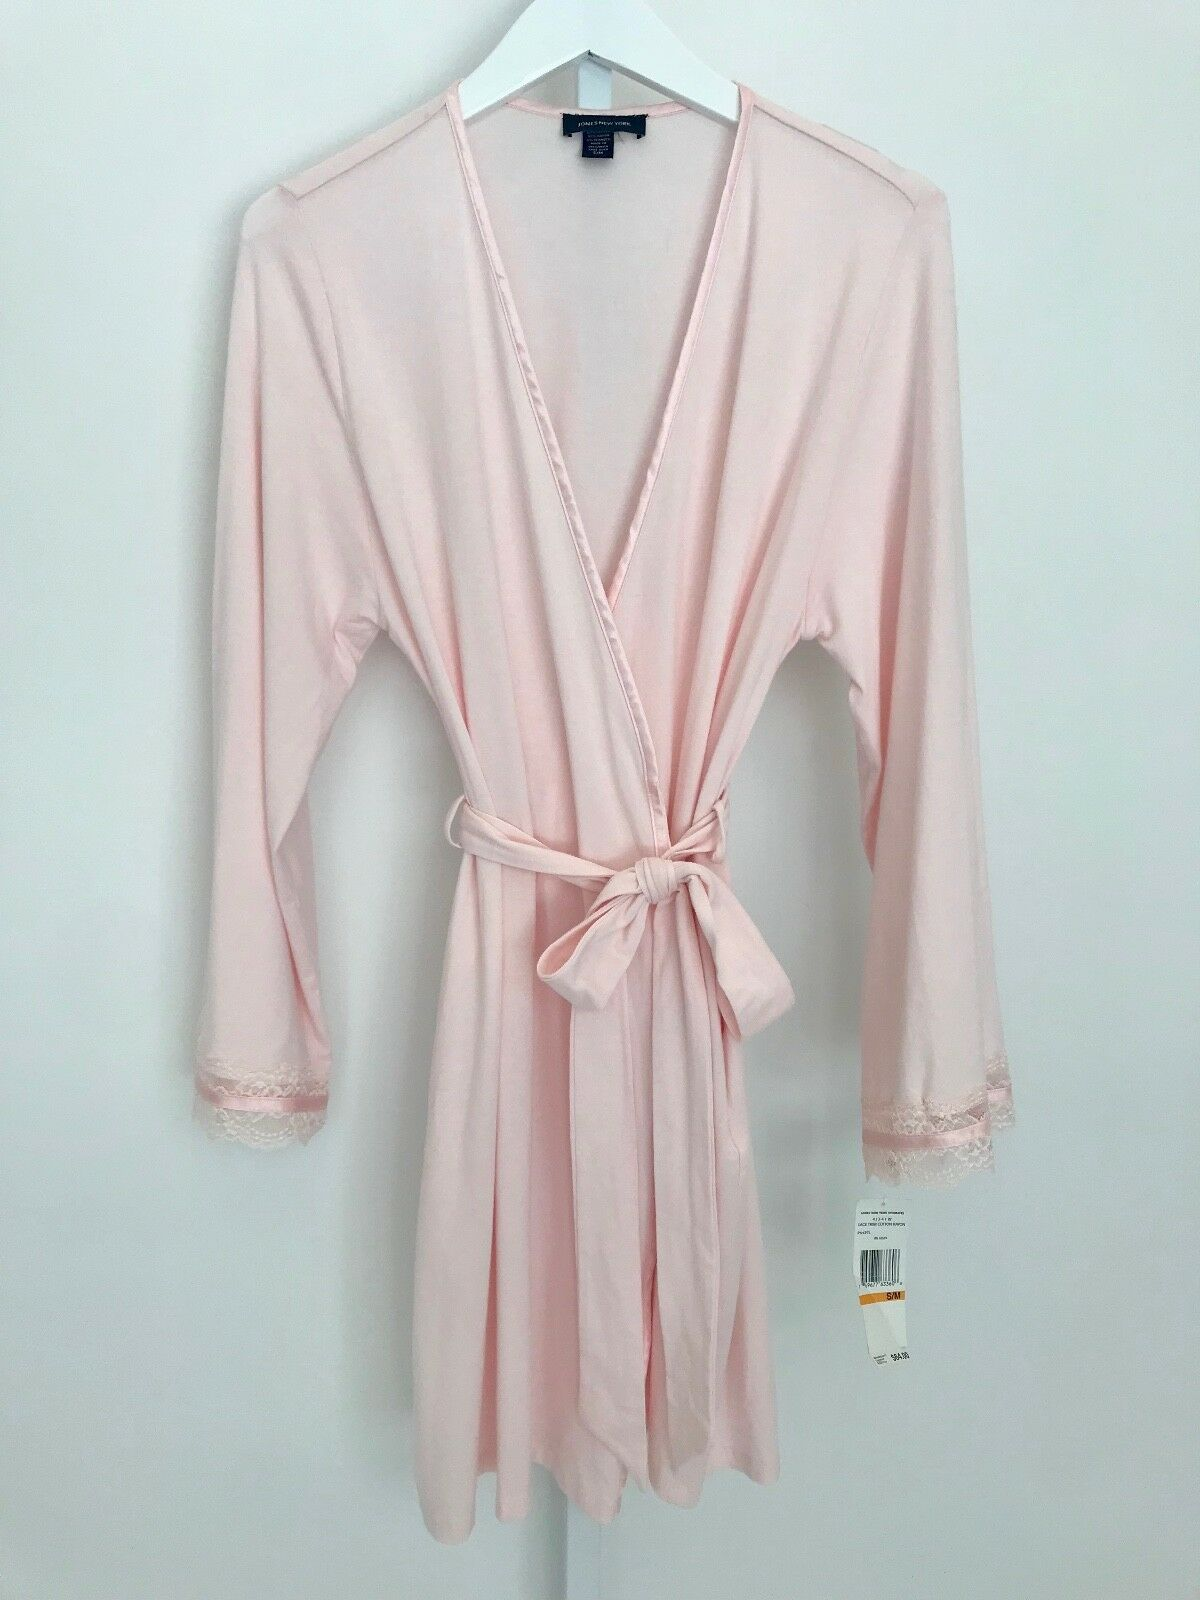 JONES NEW YORK PALE PINK LACE TRIM ROBE COTTON BLEND INTIMATES SIZE S M NWTS